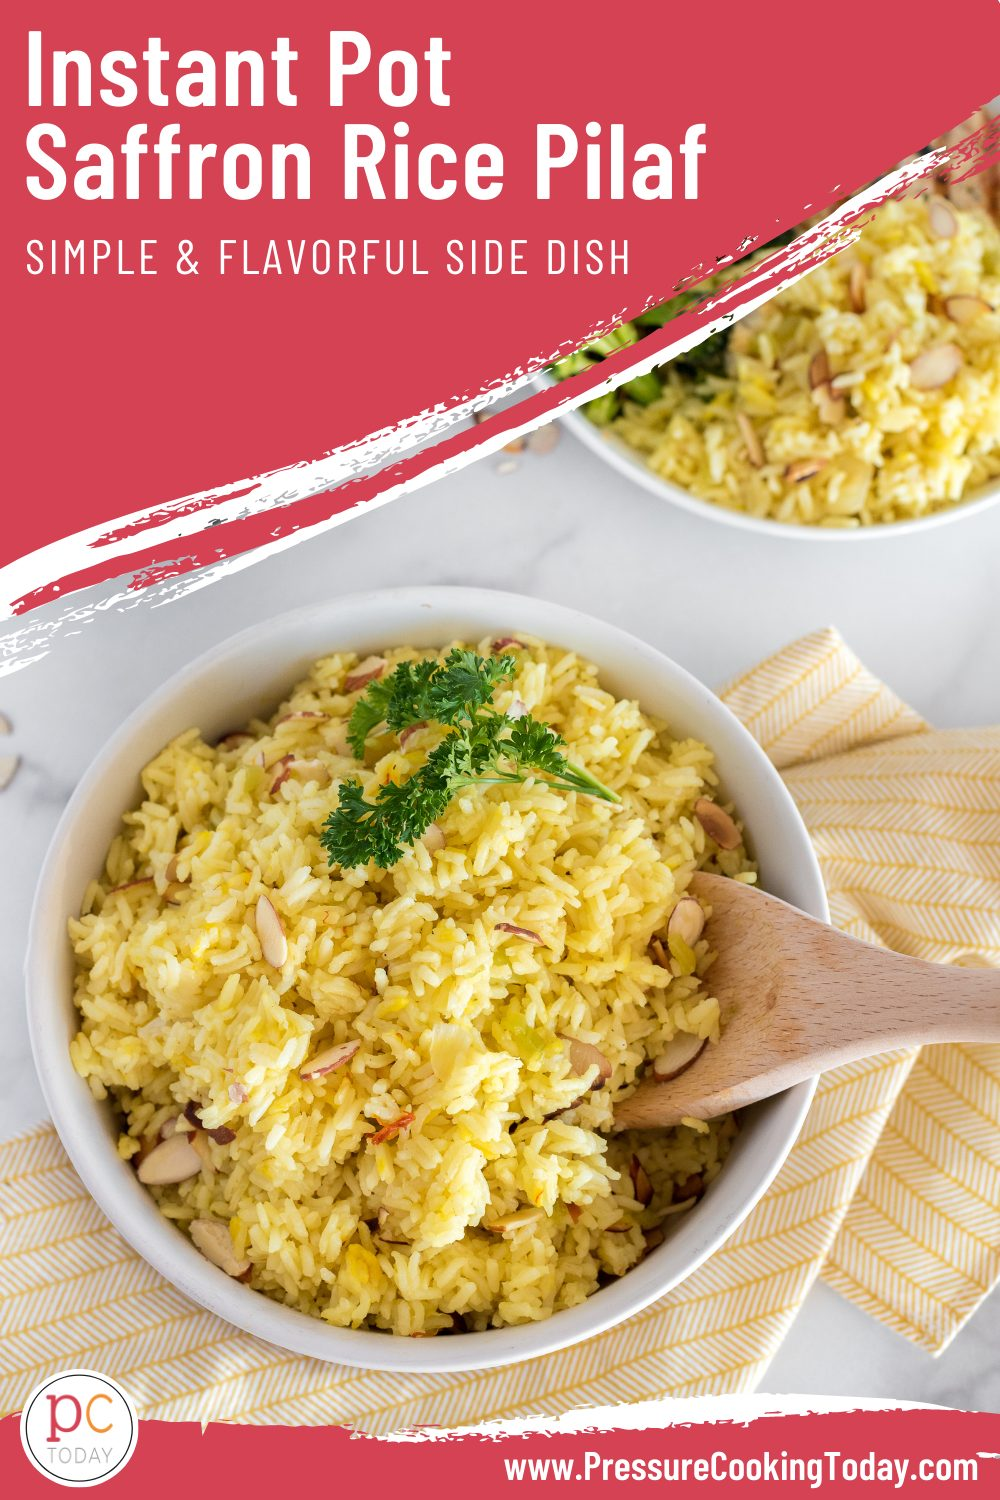 Instant Pot Rice Pilaf, made with a beautiful saffron broth, toasted almonds, and long grain white, is the perfect quick and easy side dish. We love to serve it with a simple grilled protein. #PressureCookingToday via @PressureCook2da